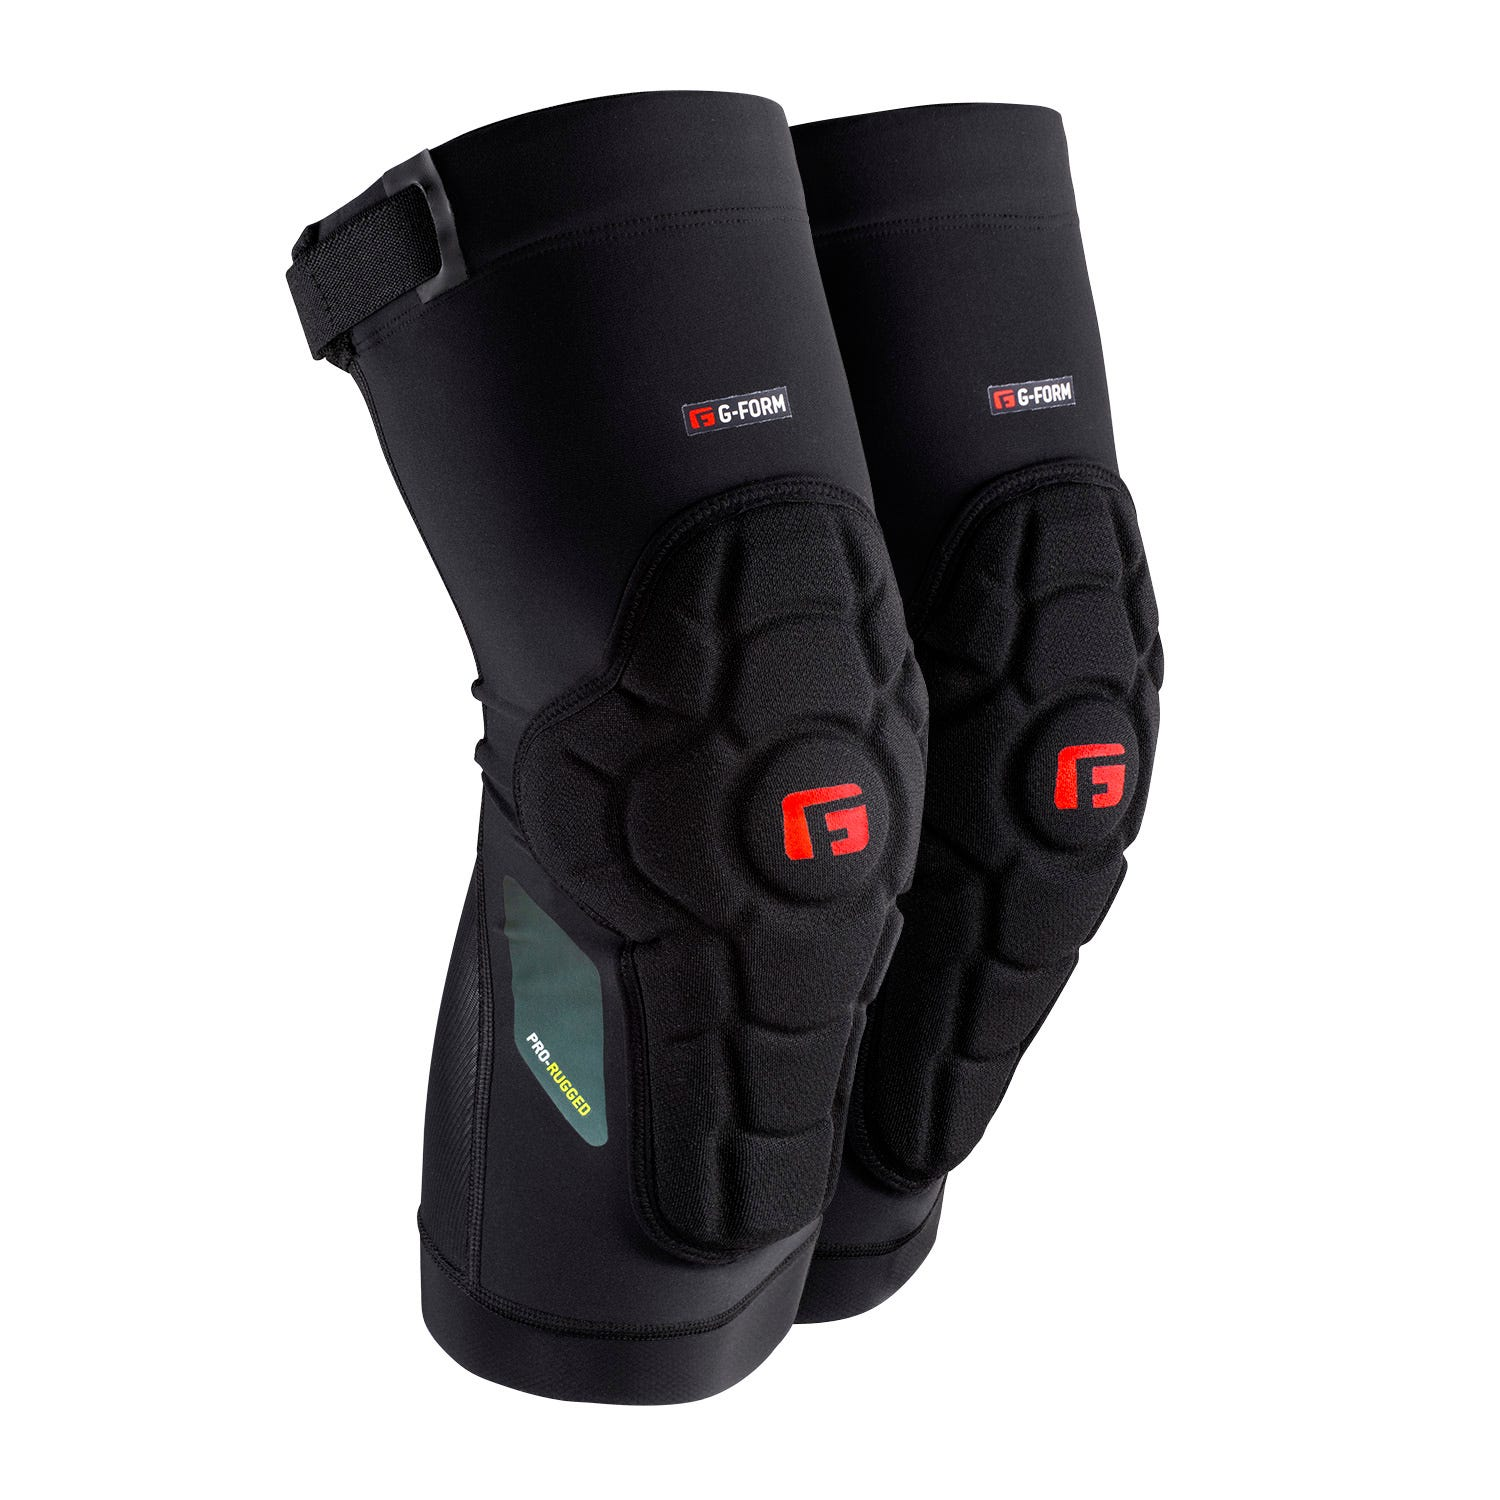 Pro-Rugged Knee Guard